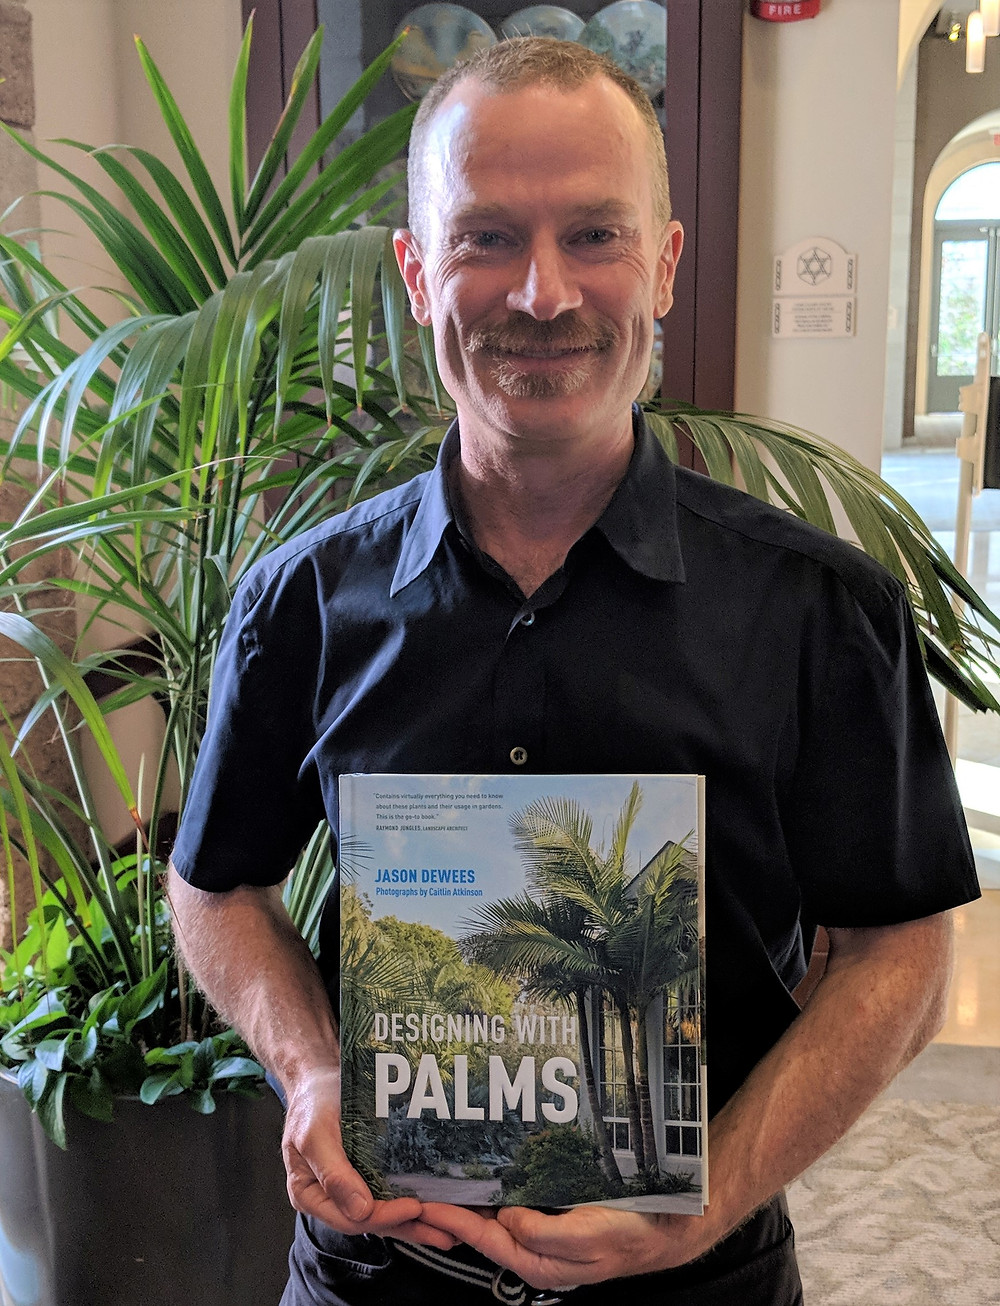 Jason DeWees shared pictures and stories about palms at the July 9 meeting.